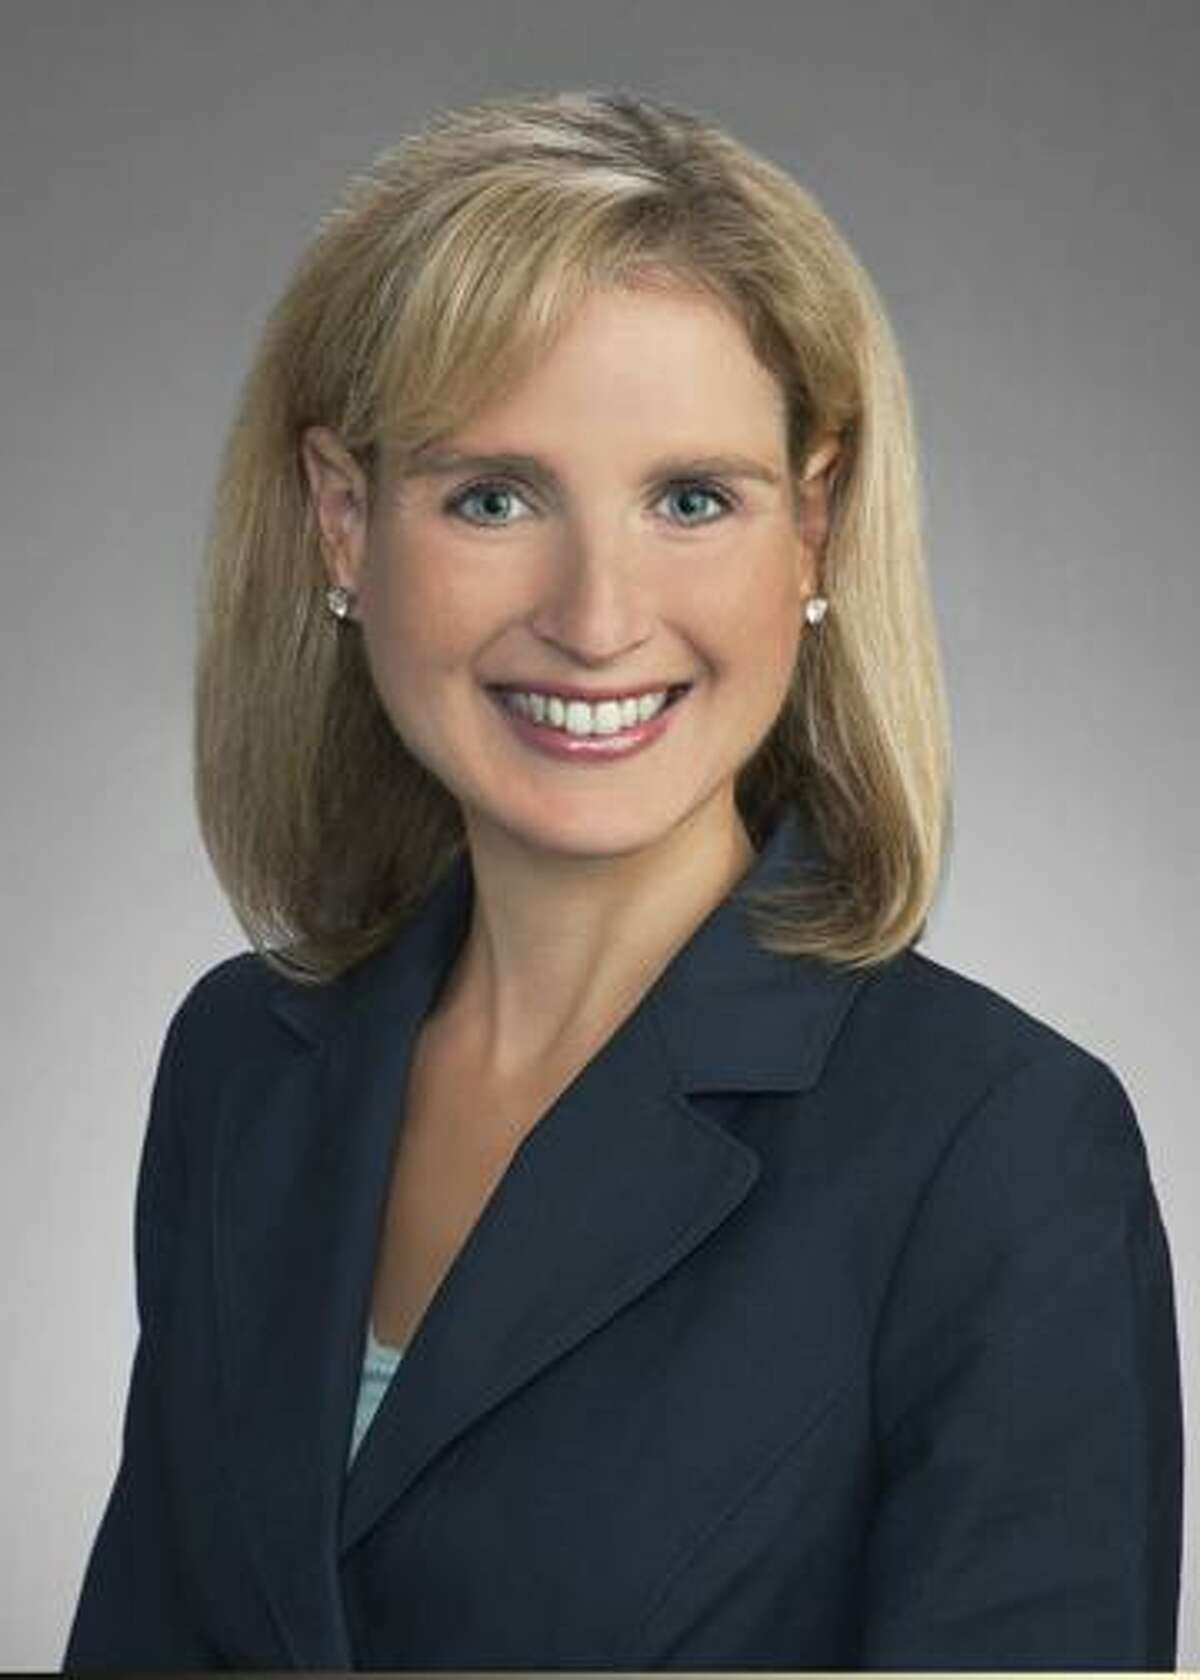 Rachel Everaard is the US Oil and Gas People Advisory Services Principal at Ernst & Young LLP